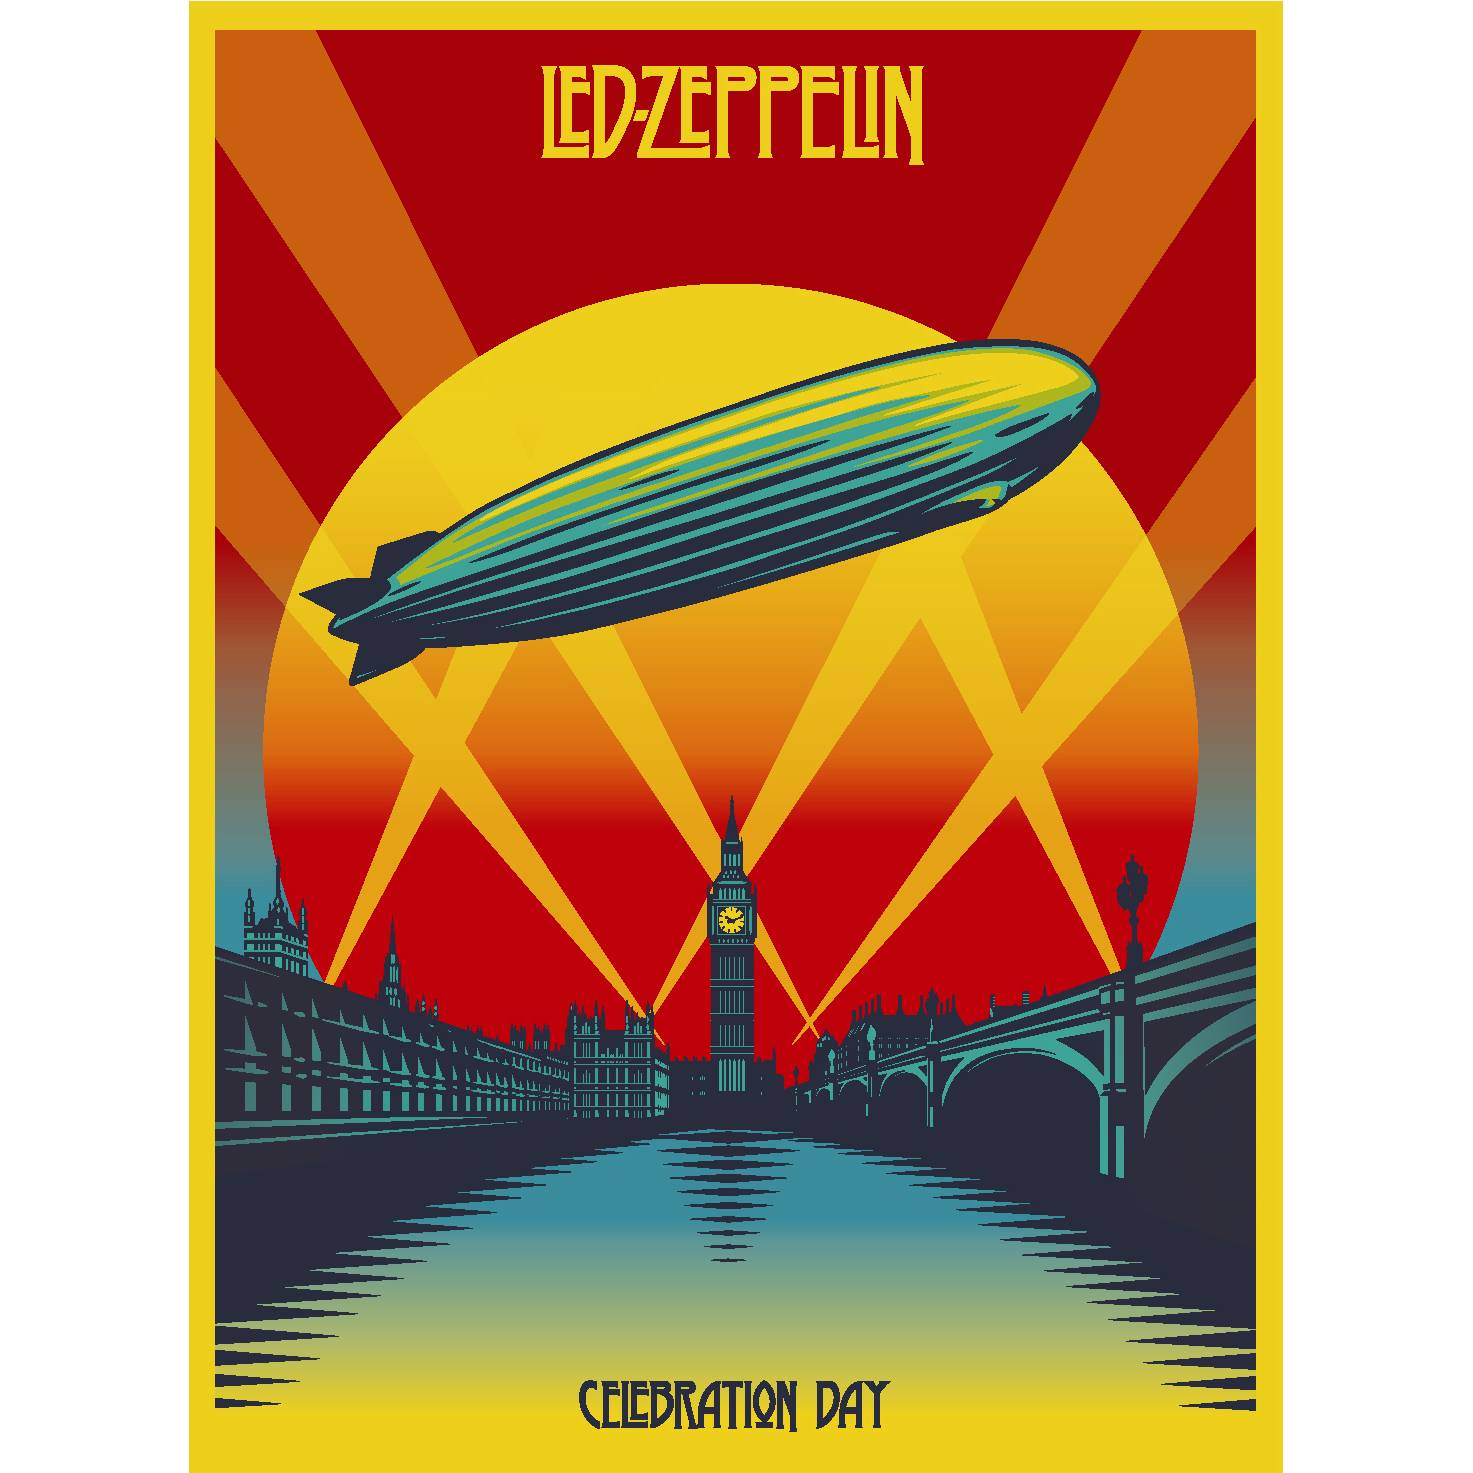 led zeppelin homepage: